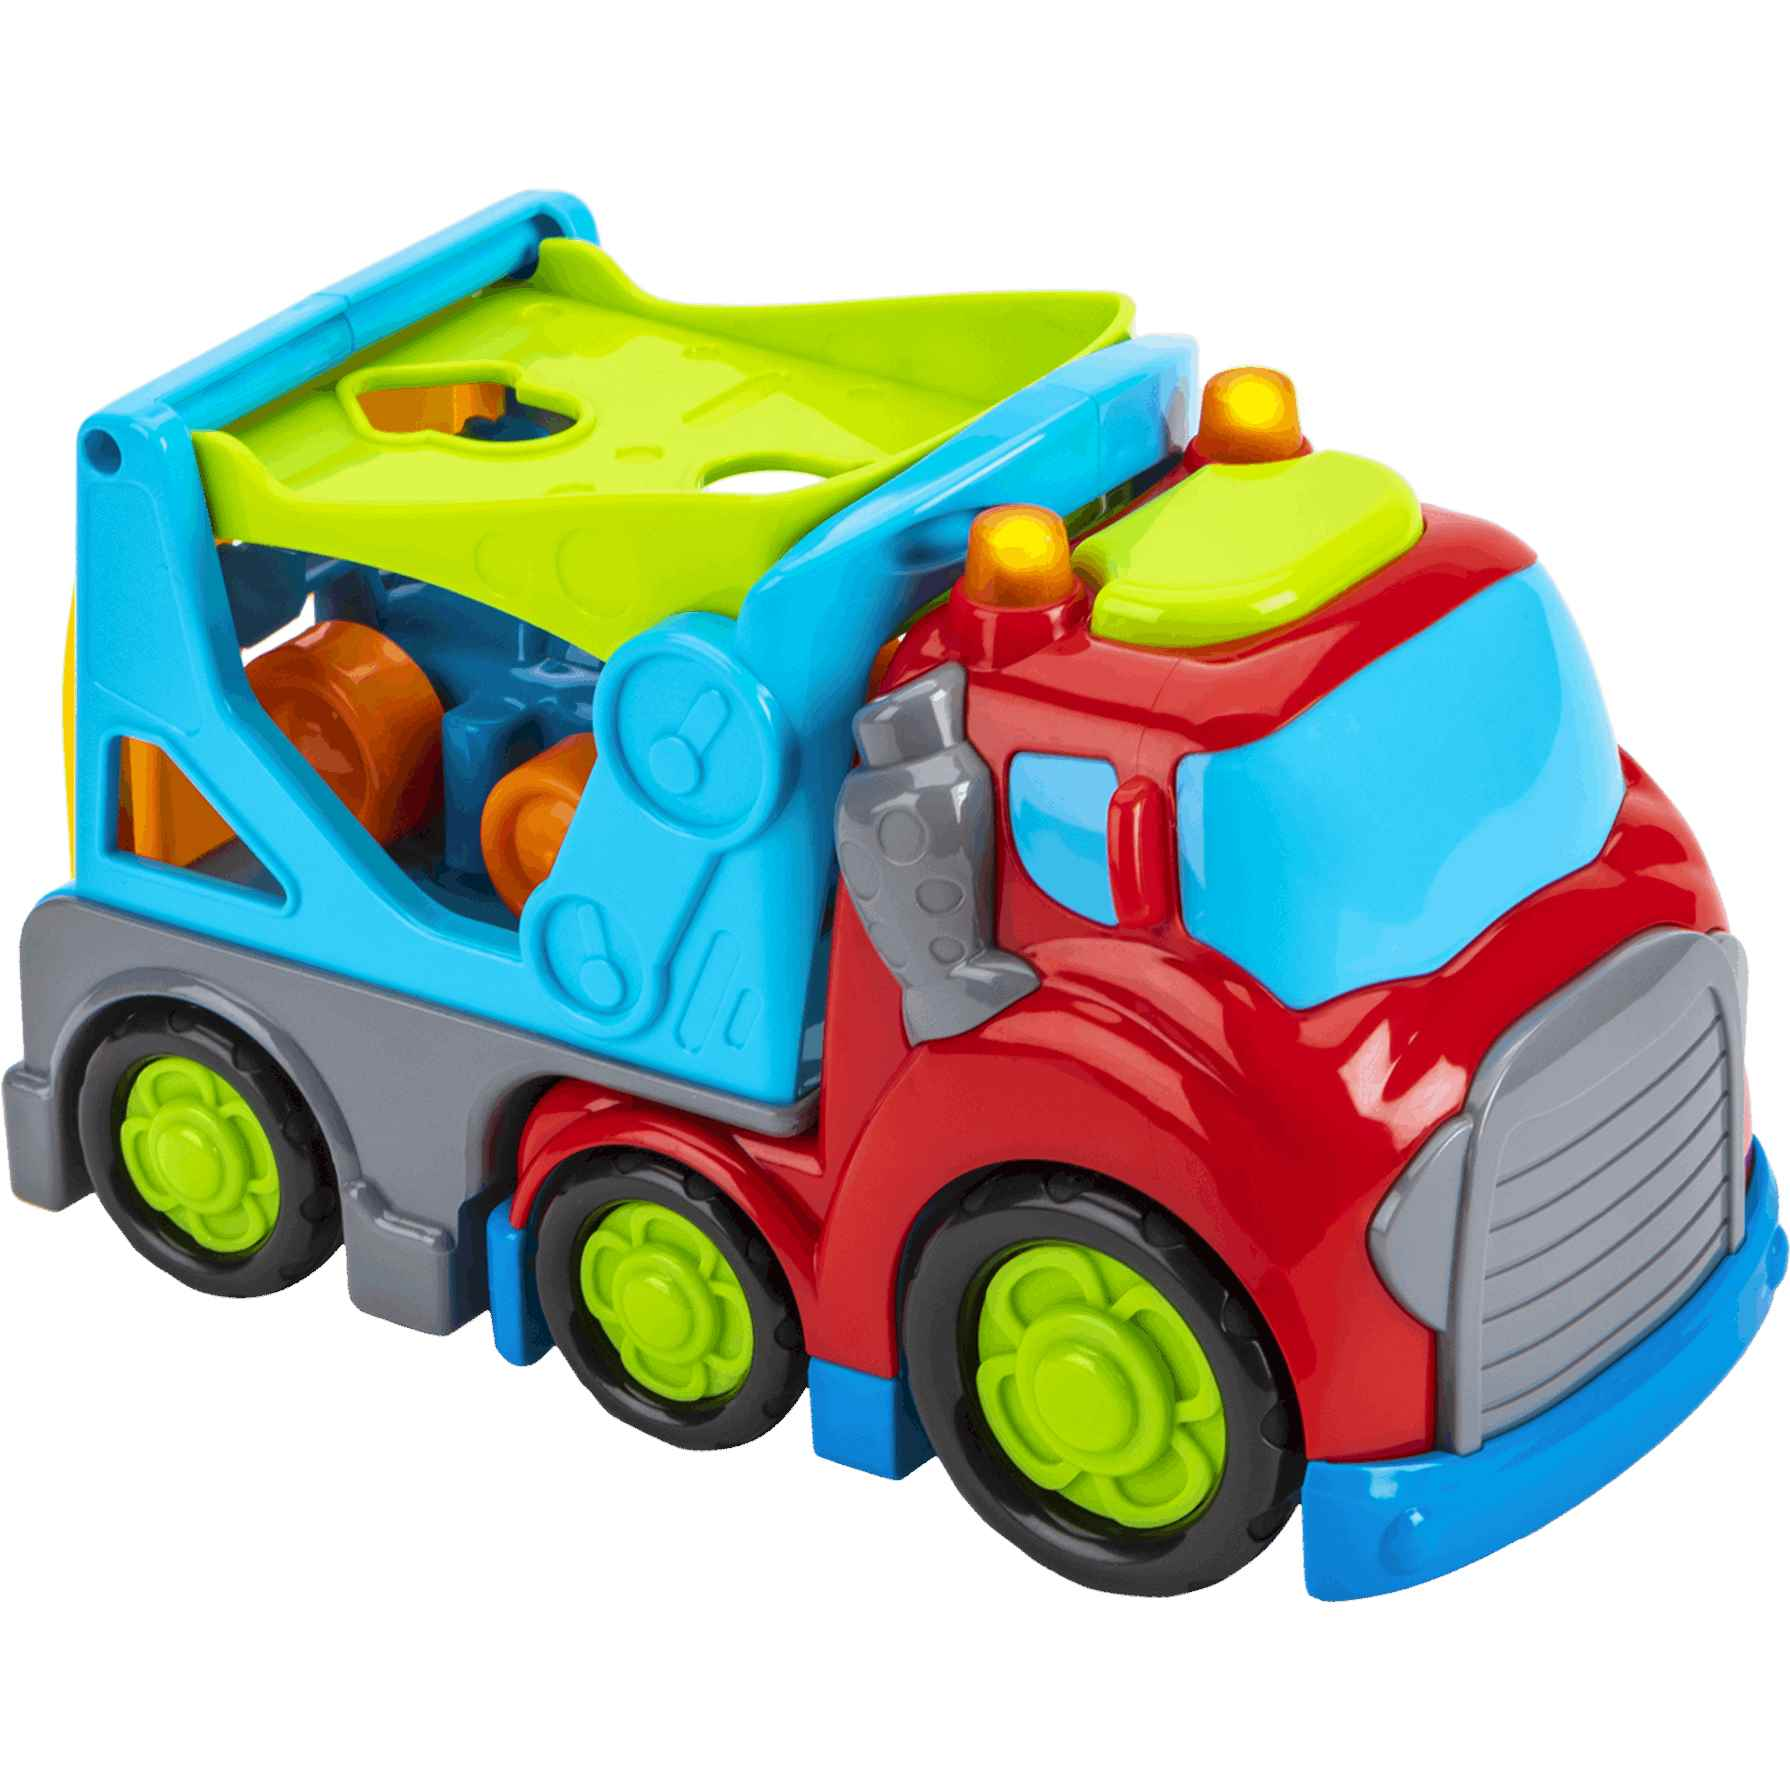 Infant Planet Camioncito Kiddy Go